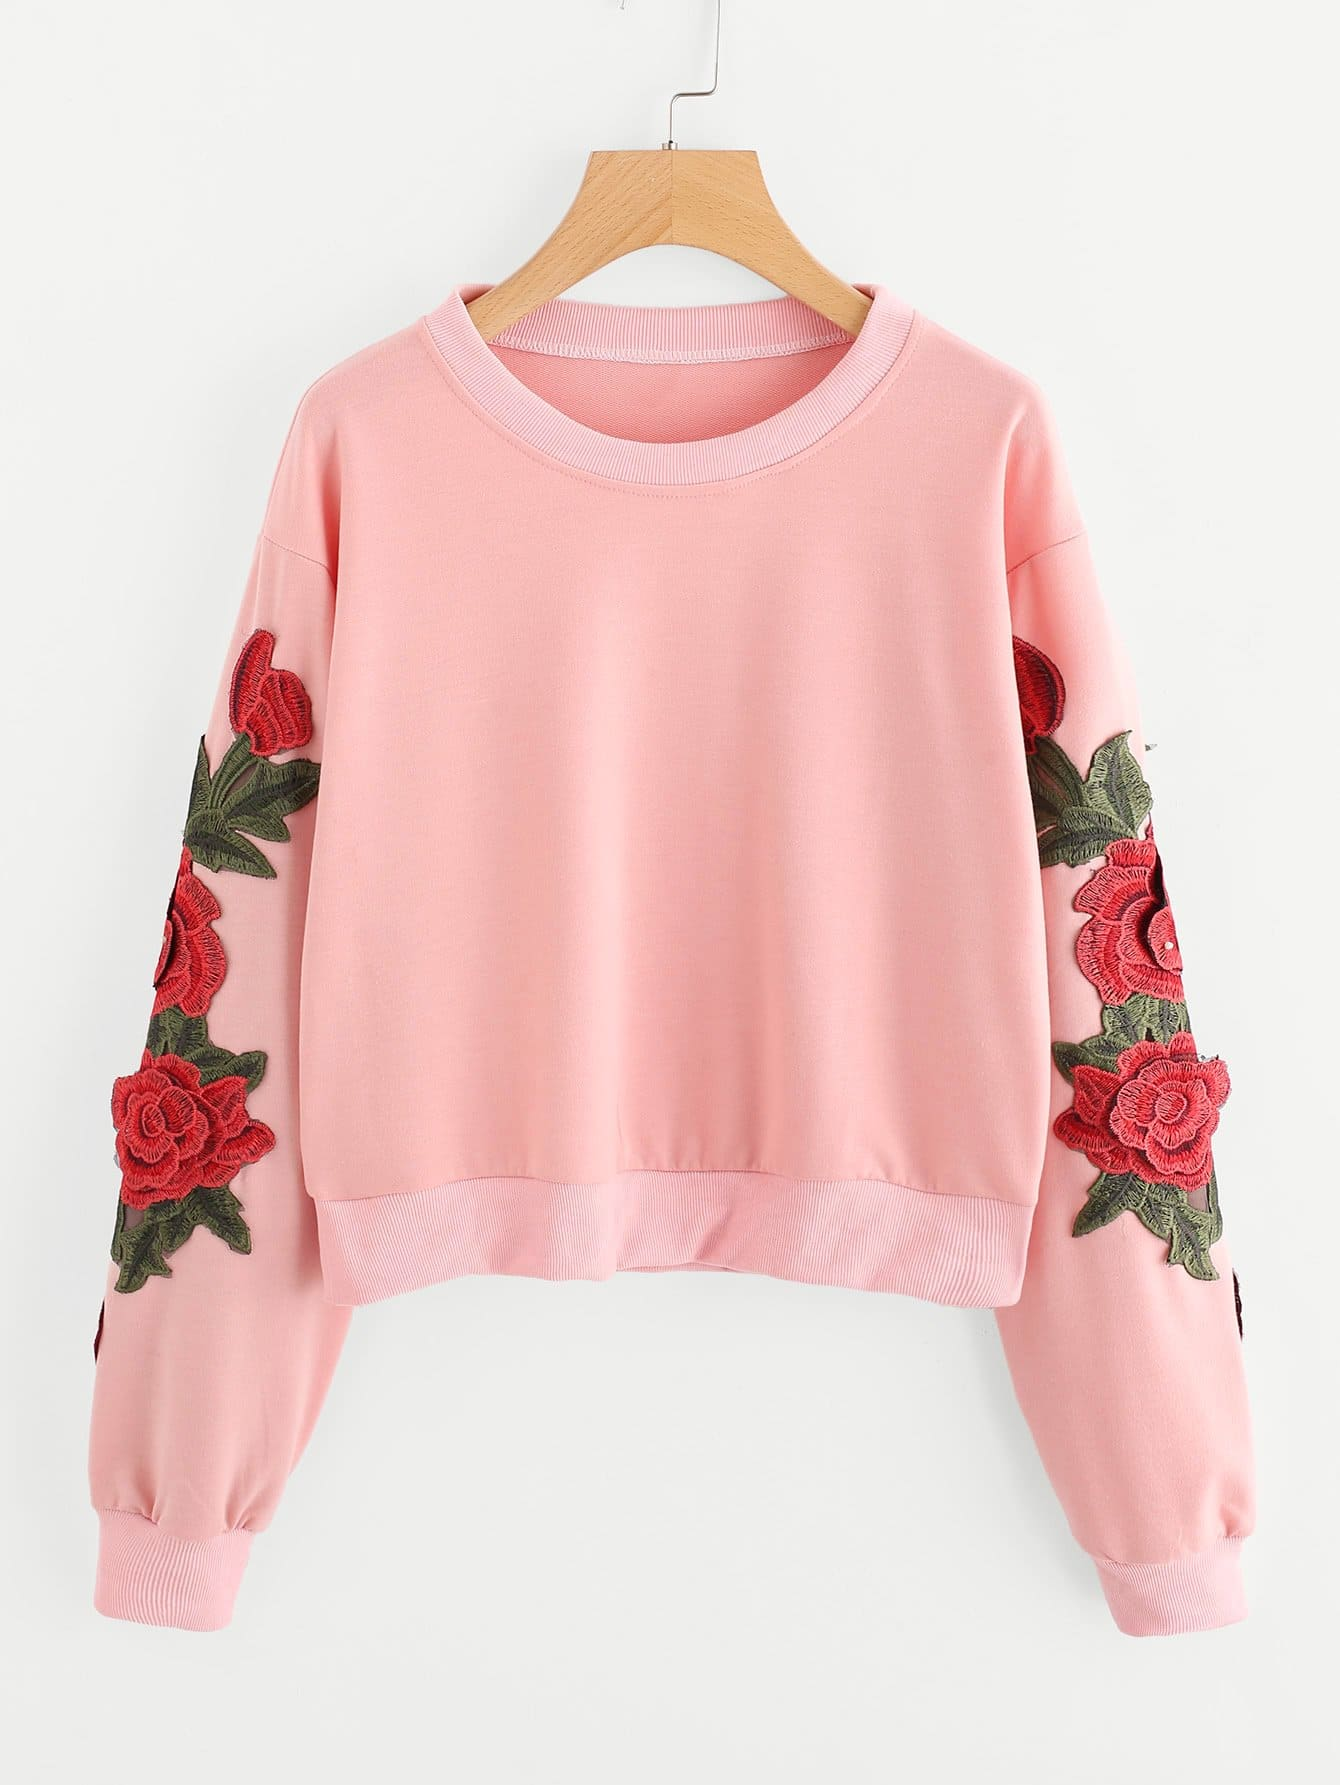 3D Embroidered Applique Crop Sweatshirt